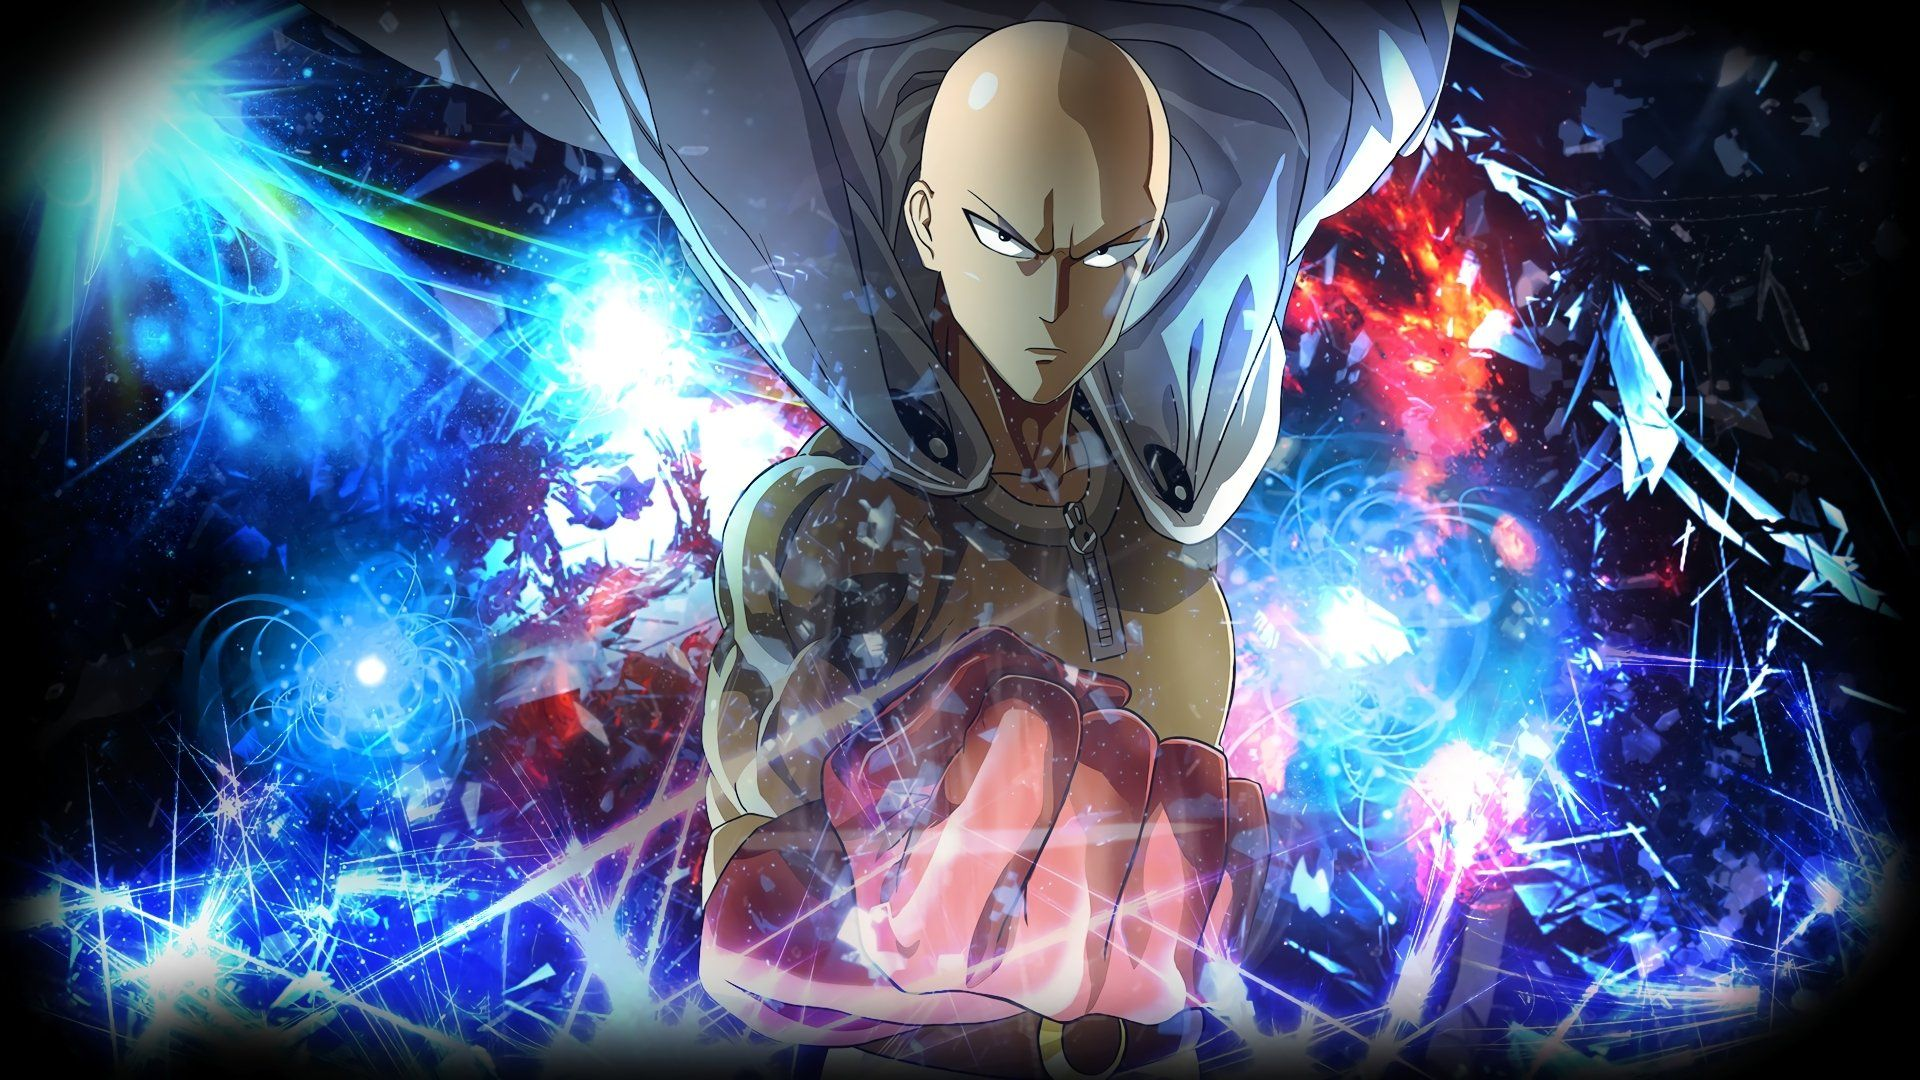 Download Free Png Anime One Punch Man Saitama One Punch Man